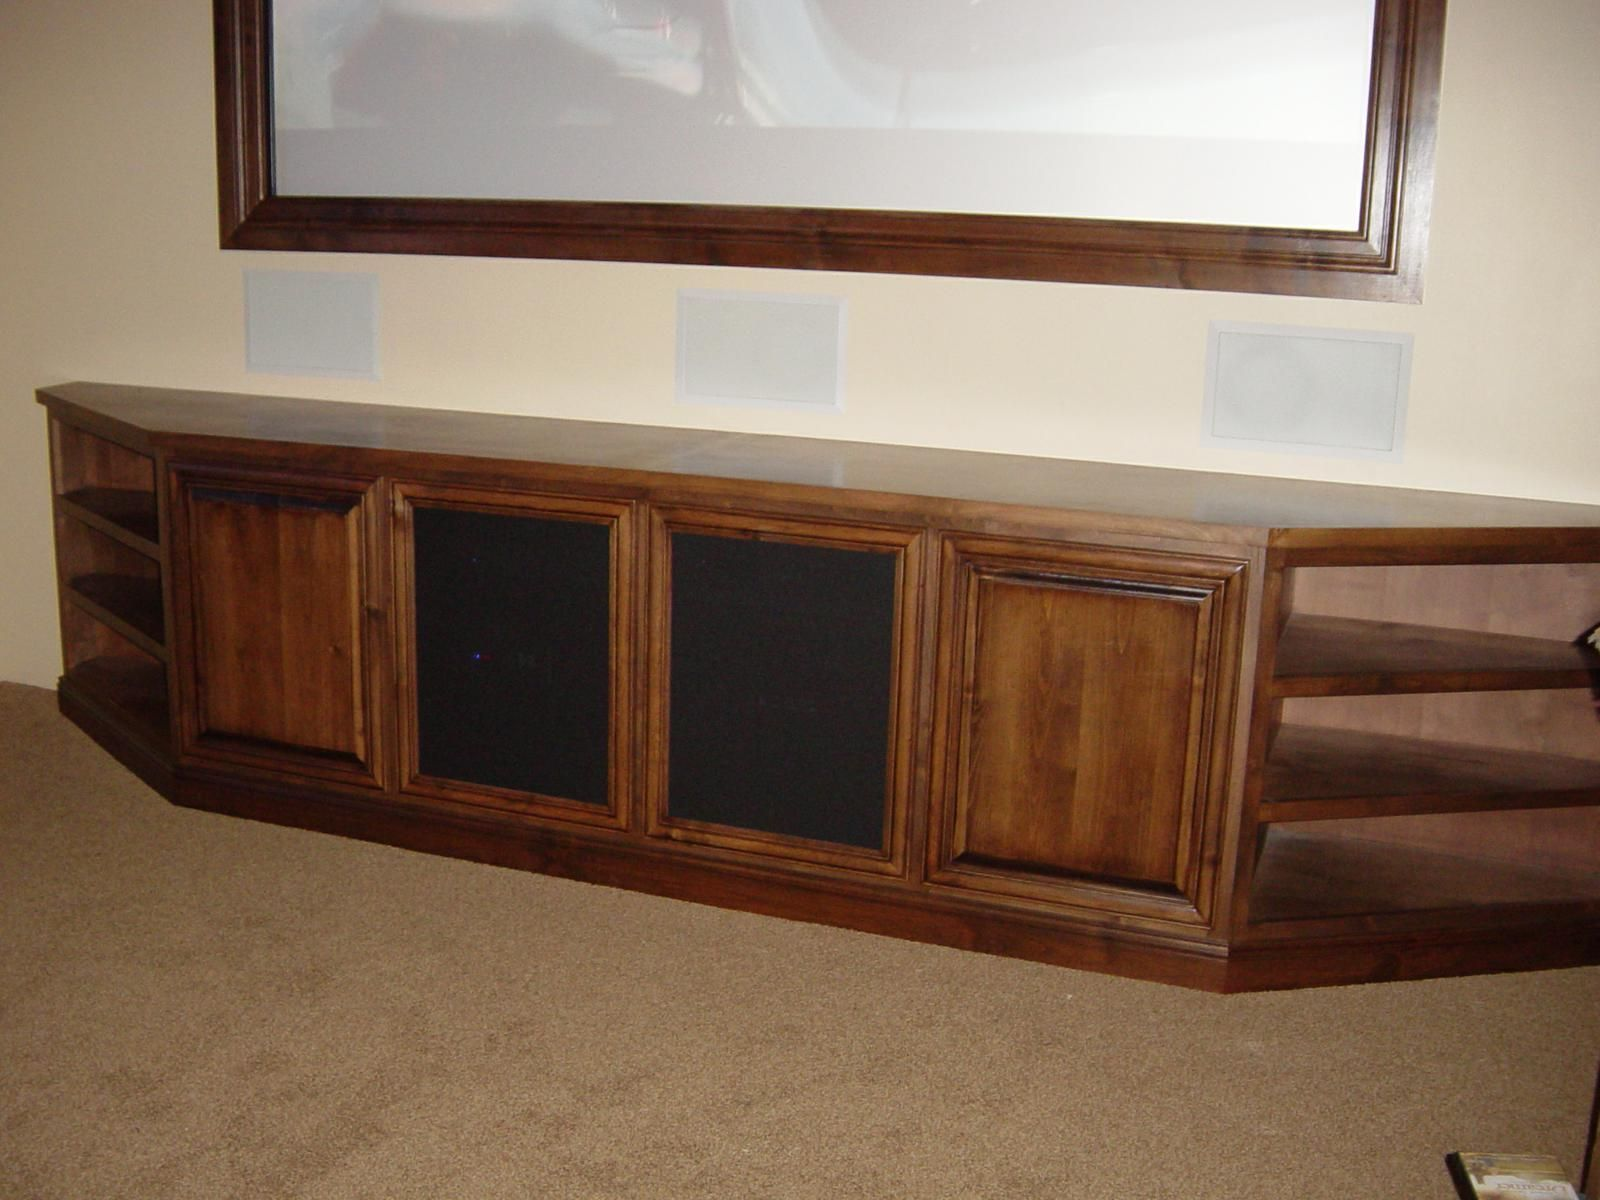 Custom alder wood audio video furniture by ck valenti for Custom wood cabinets